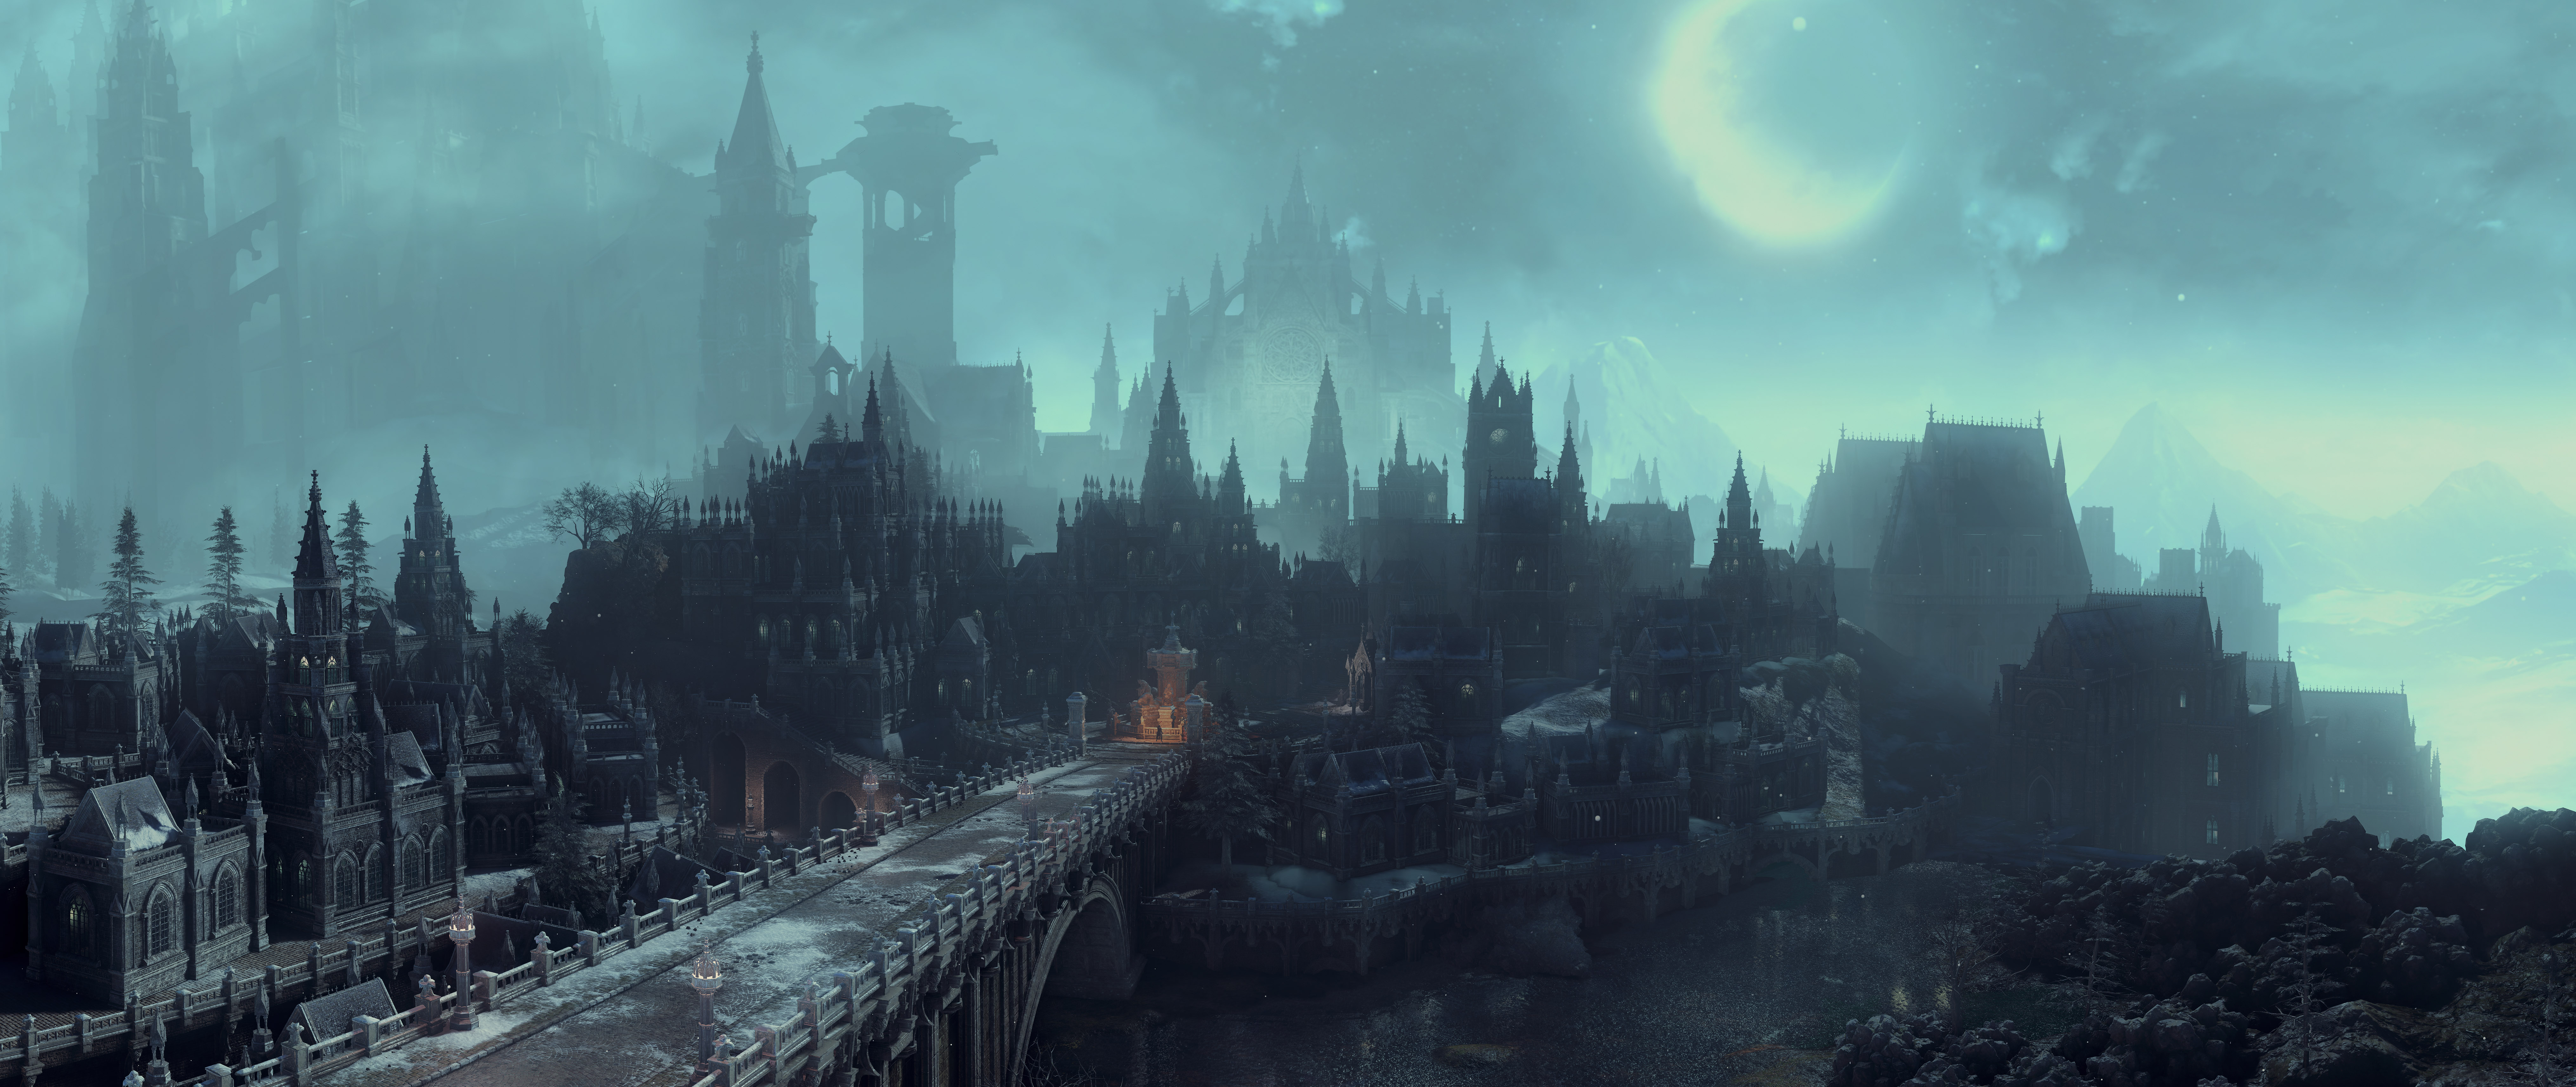 74 Amazing Fantasy Screenshots For Your Desktop Pc Gamer